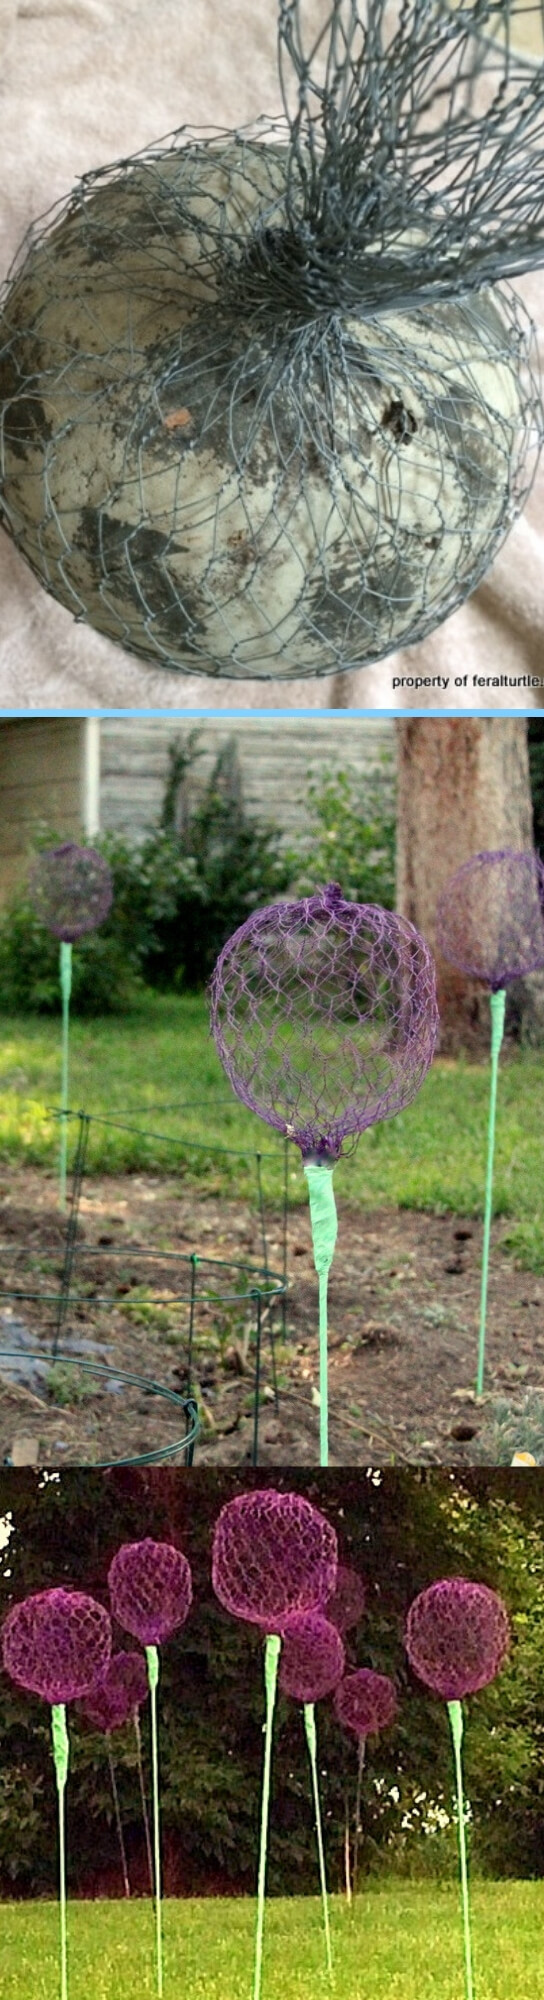 Giant Allium Chicken Wire Flowers | Best DIY Garden Globe Ideas & Designs